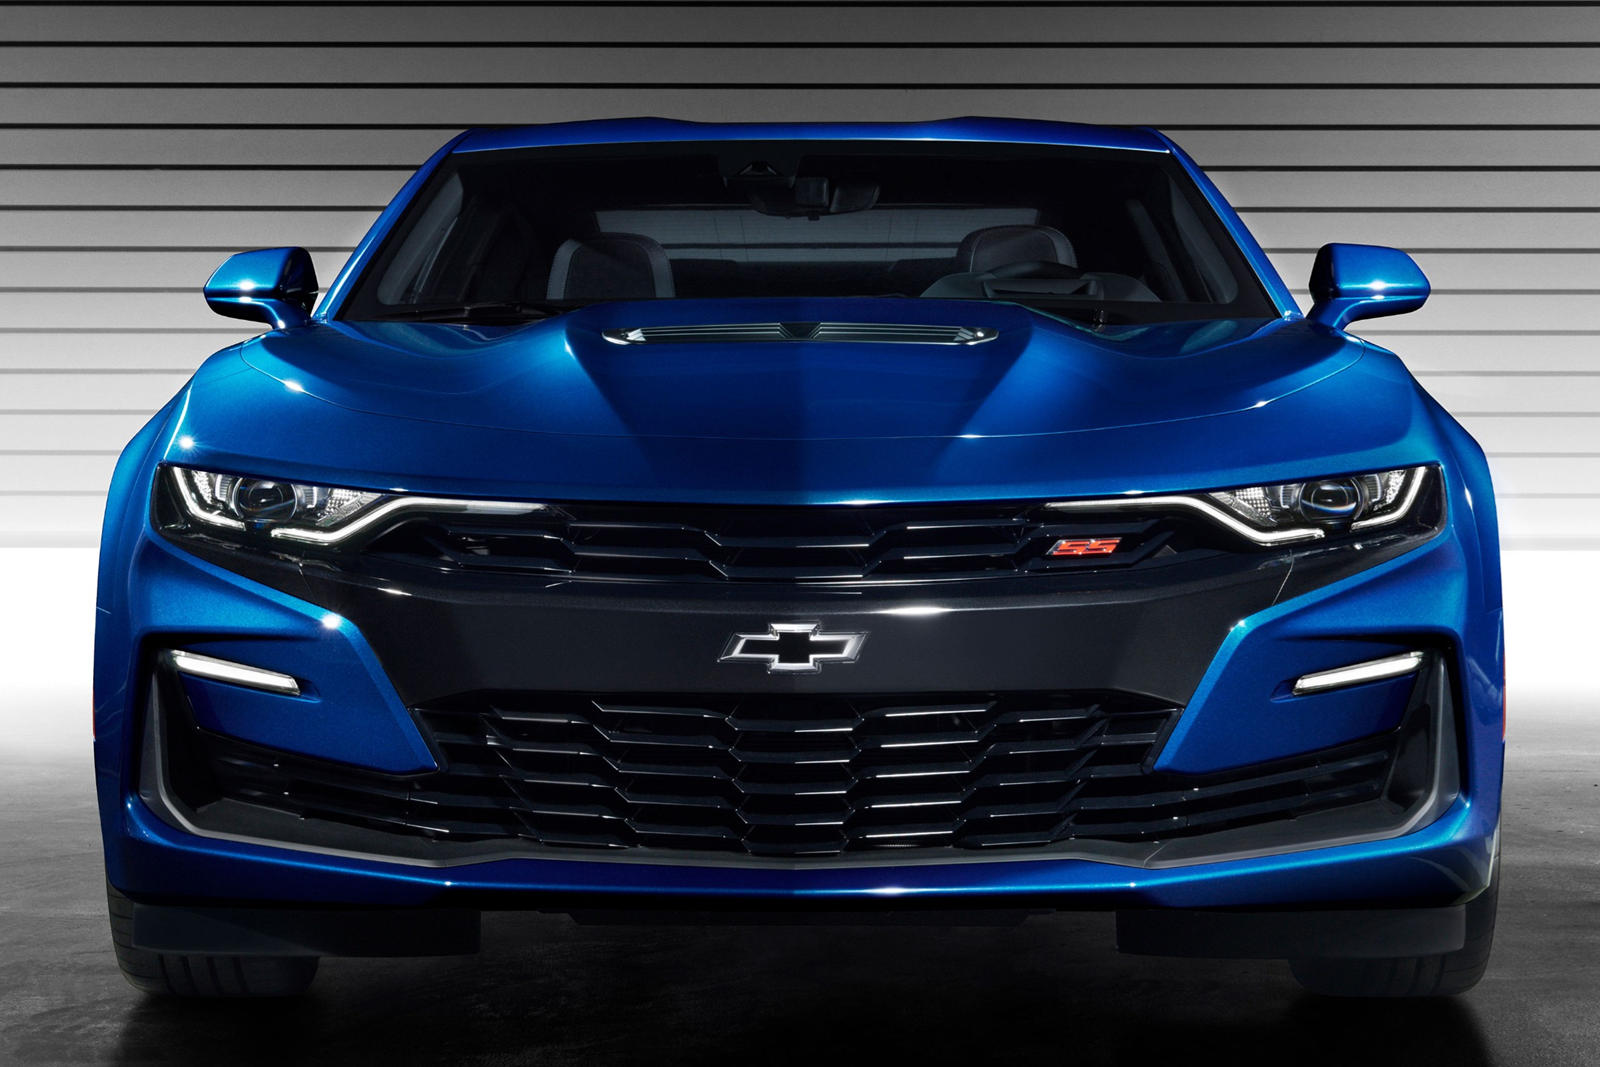 Chevrolet Camaro And Corvette Owners Are Having A Major